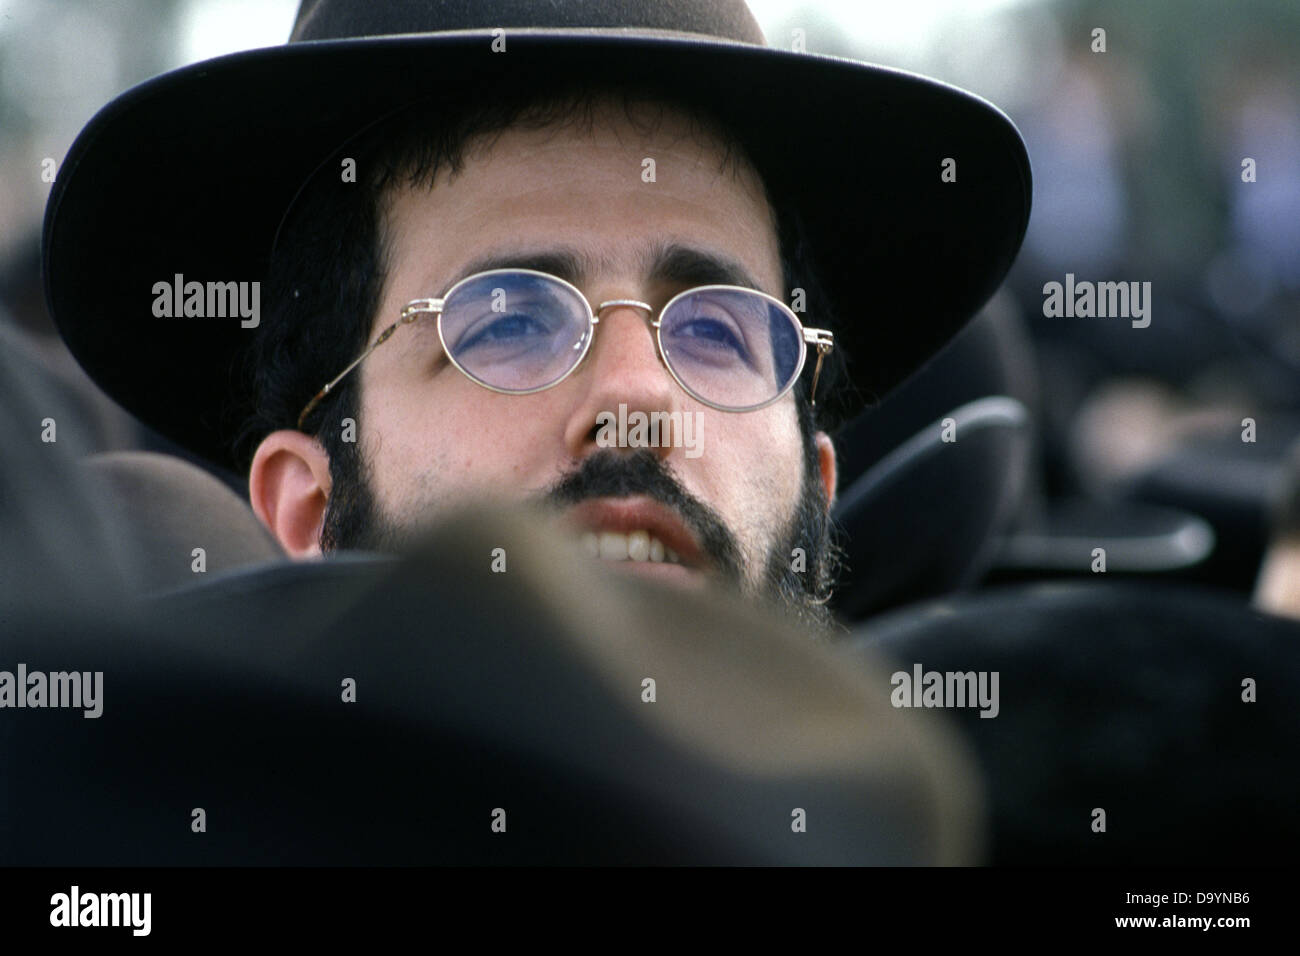 An Ultra Orthodox religious Jew in Israel Stock Photo